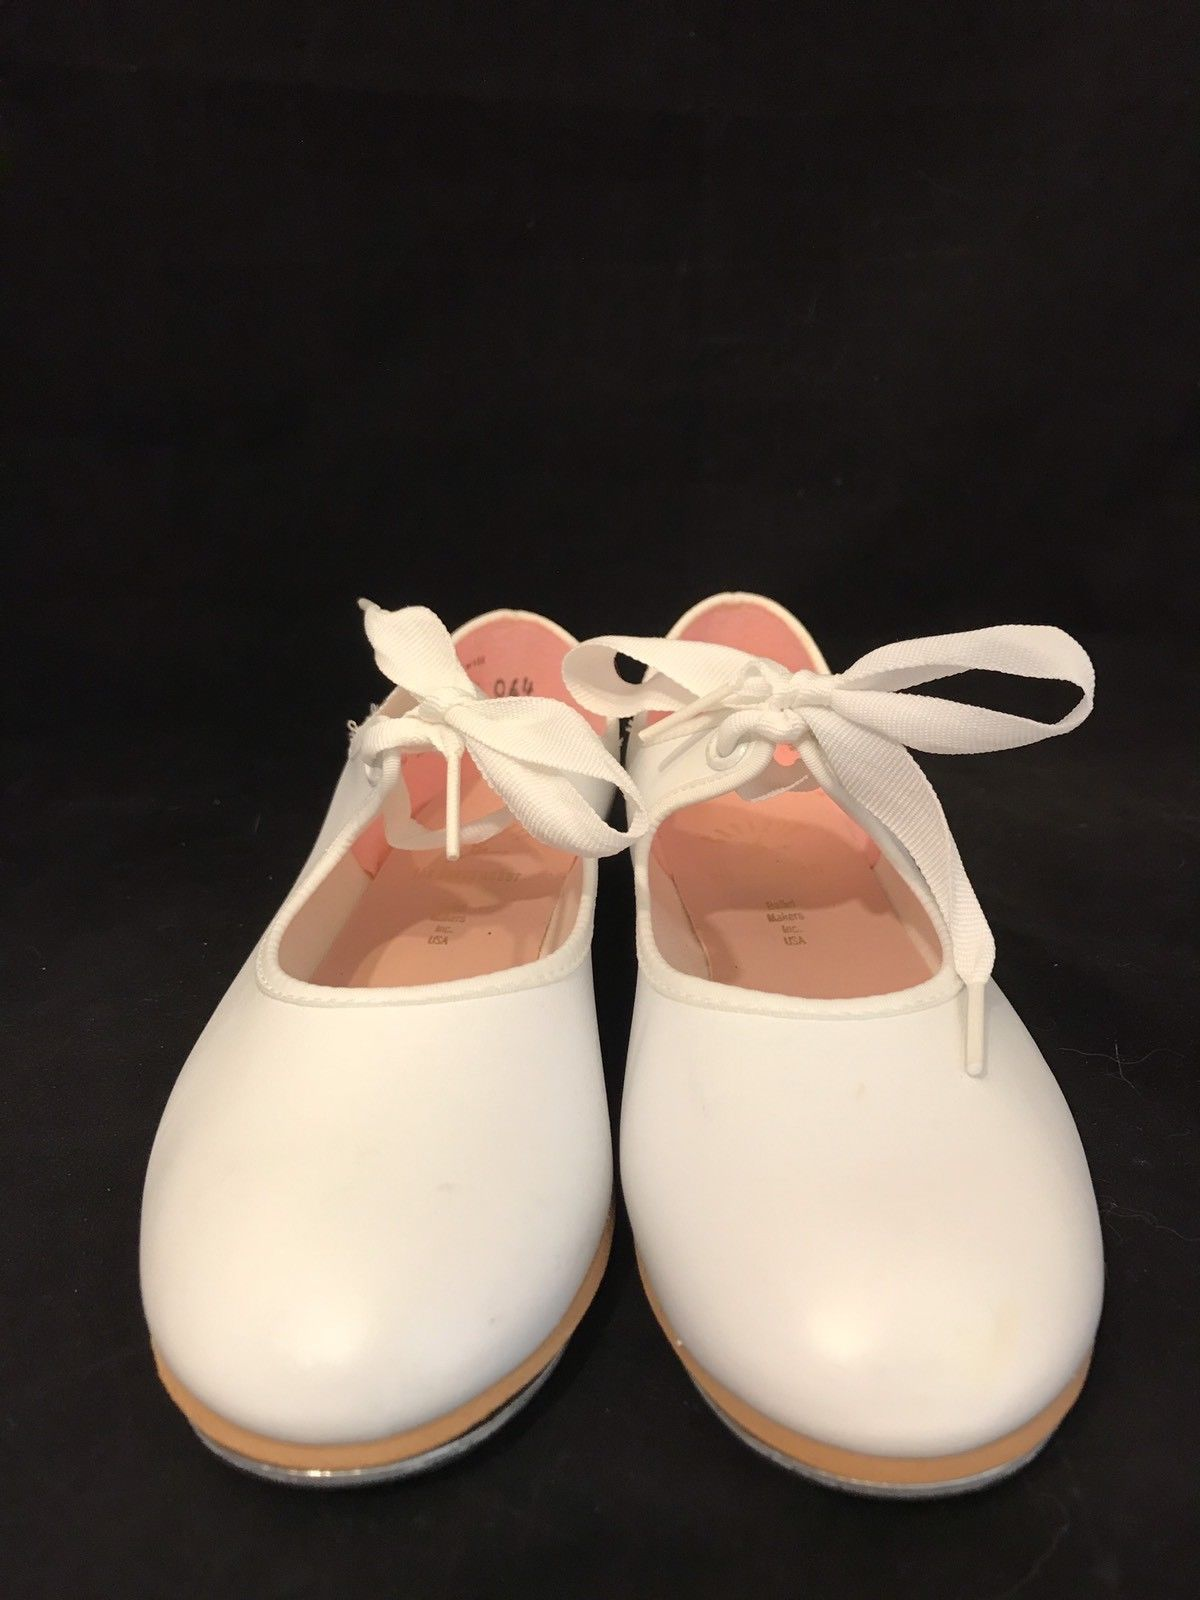 CAPEZIO Womens White Mary Janes Tap Dance Shoes Size 1.5 W Dance Makers Inc New